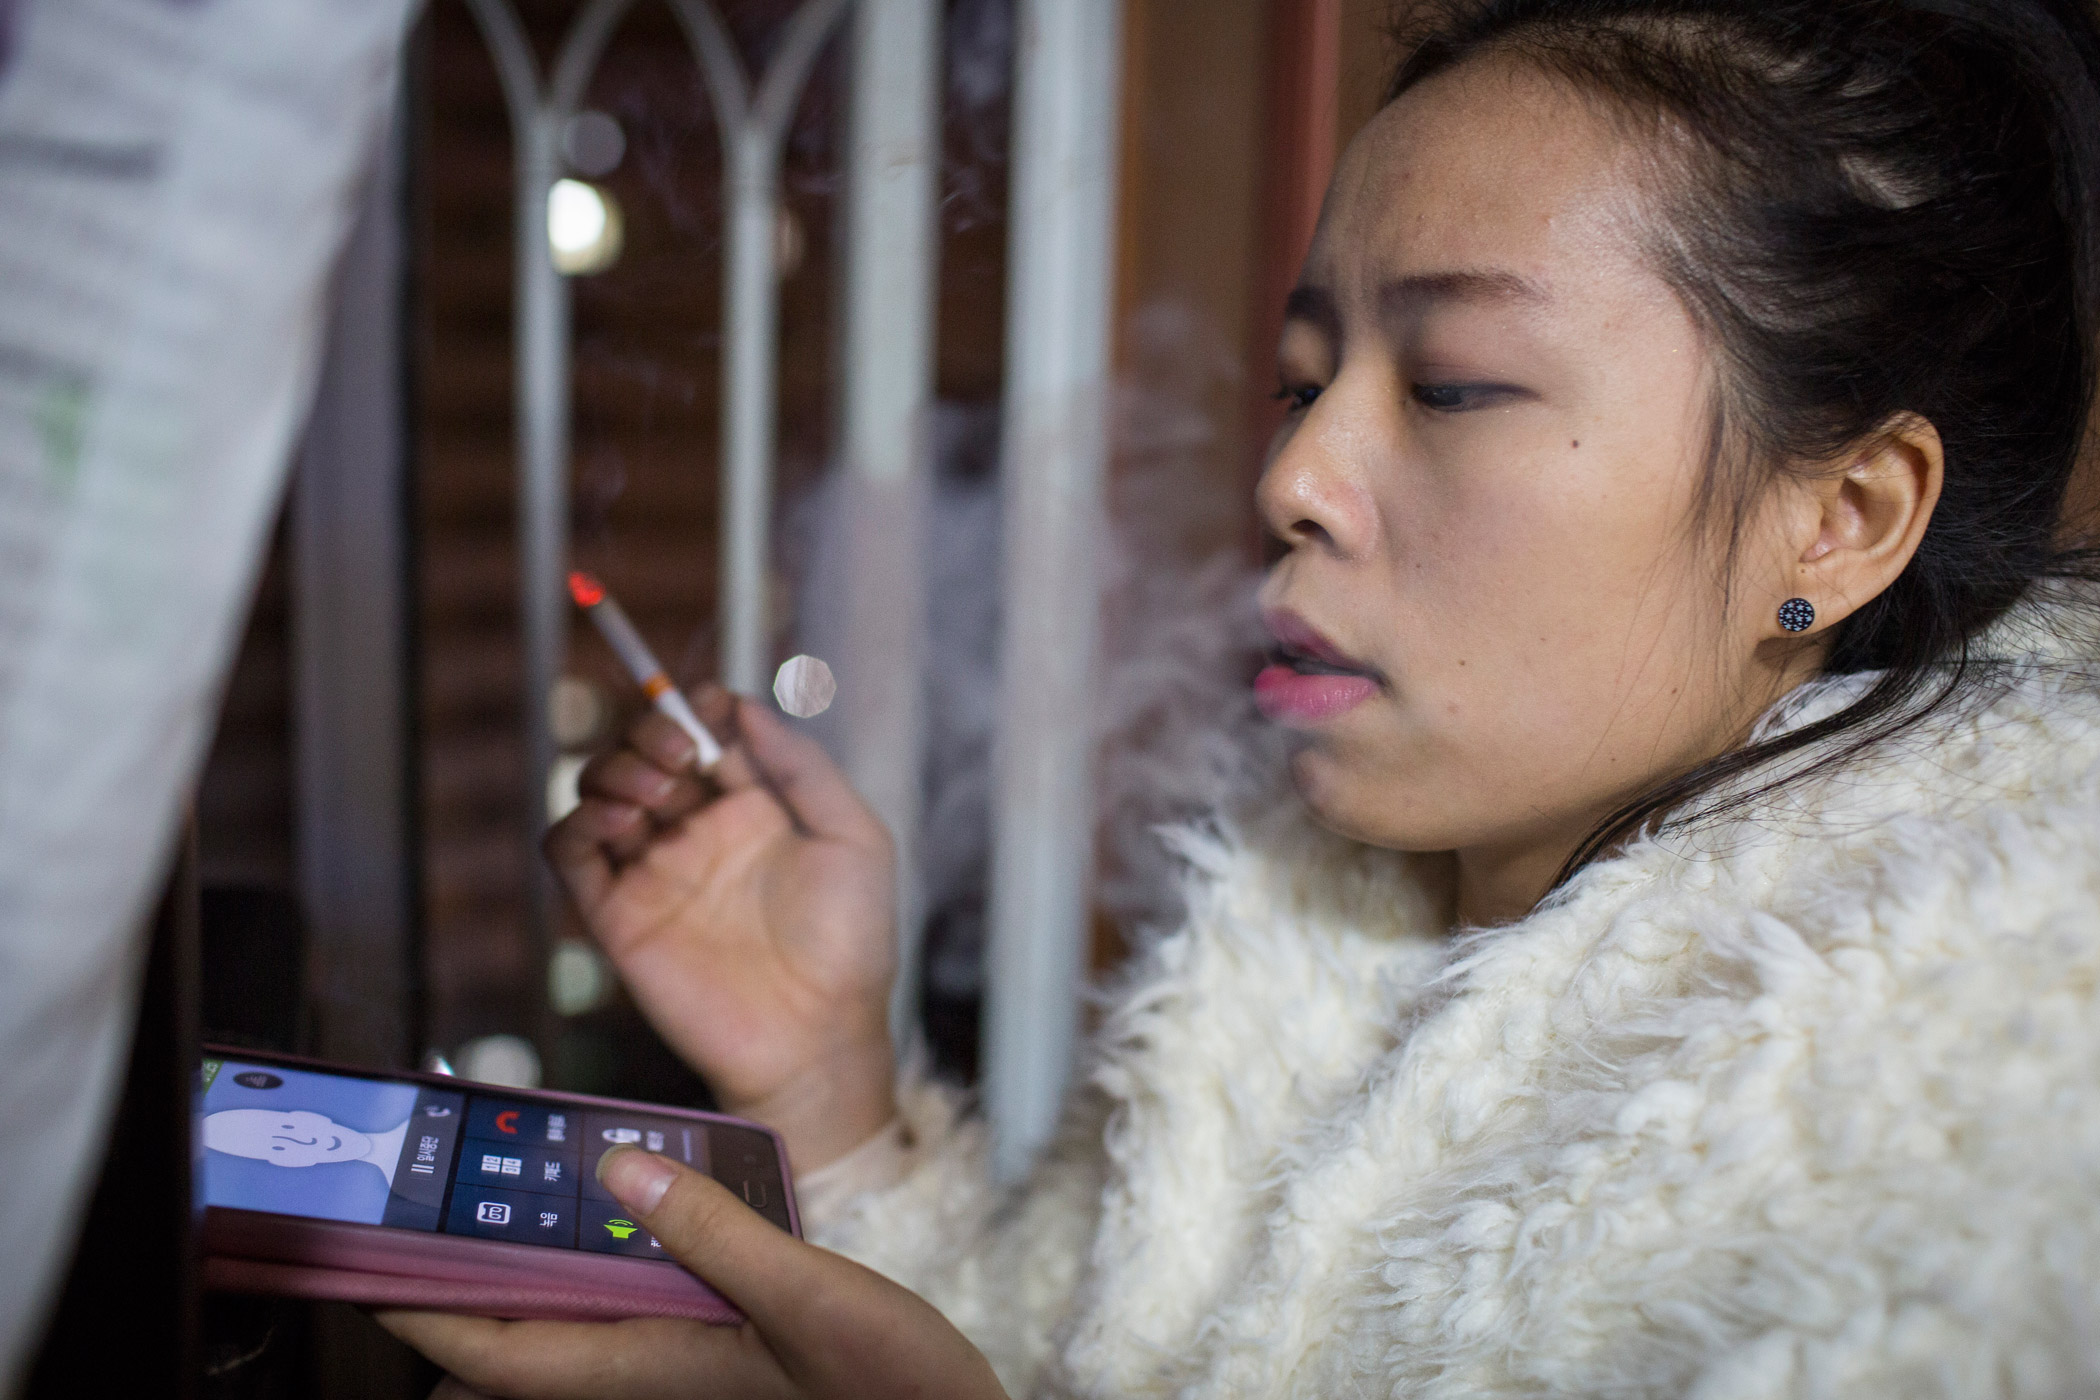 Kyoung-ok smokes on her balcony on Feb. 28, 2015 in Mia, Seoul, South Korea.